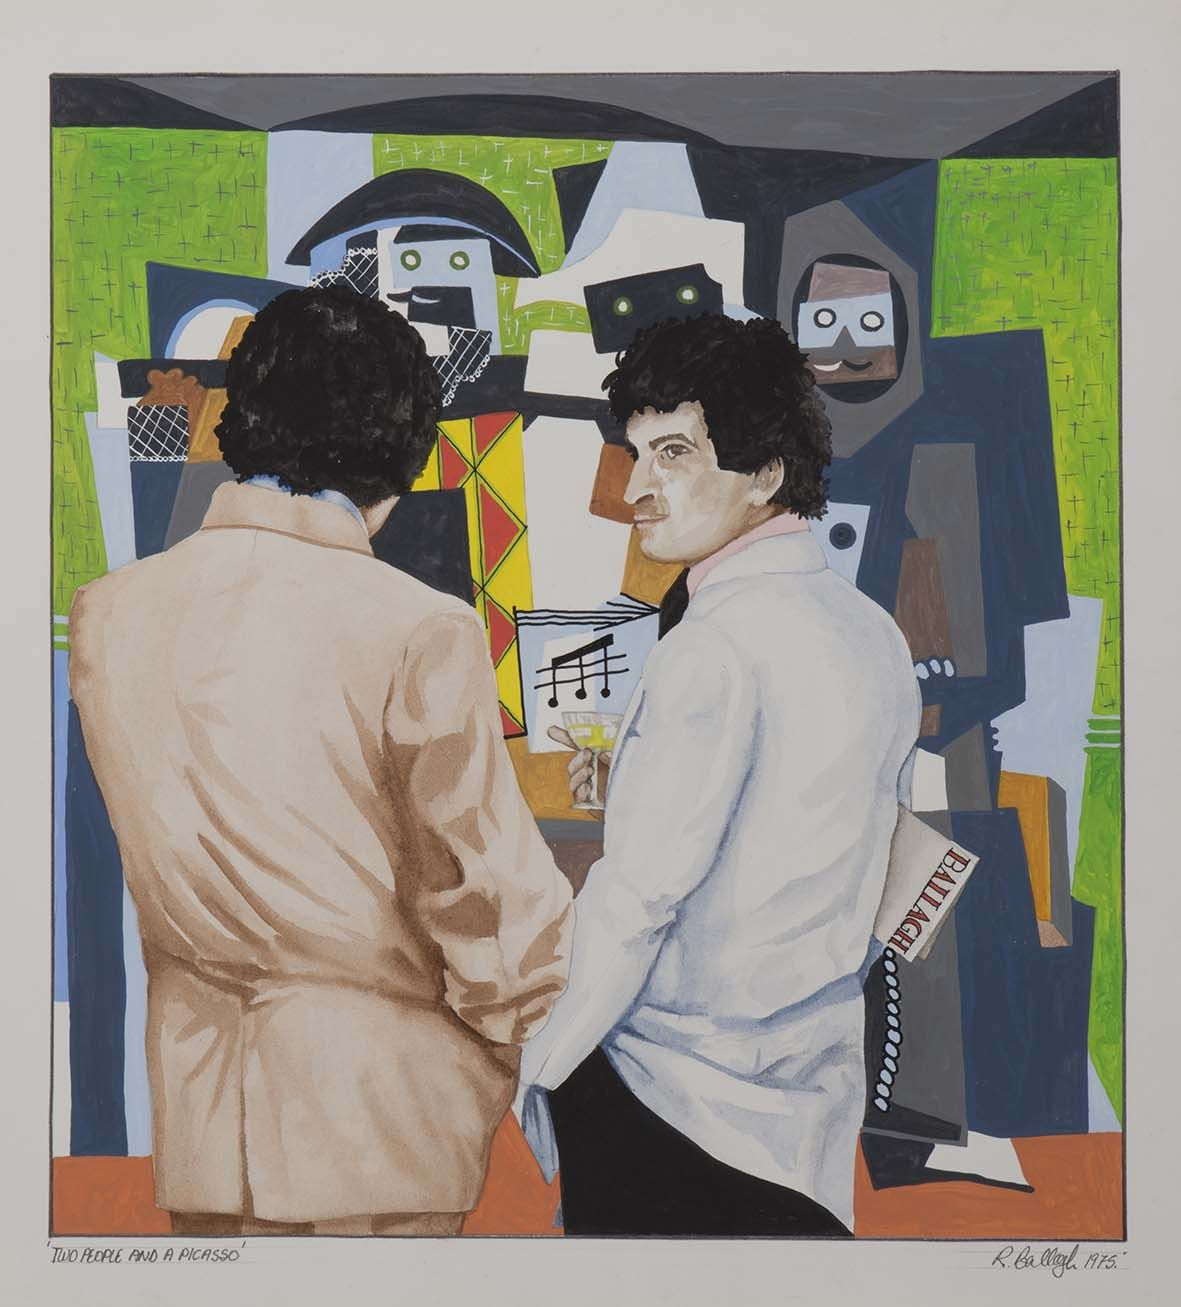 Robert ballagh b 1943 two people a picasso irish artart